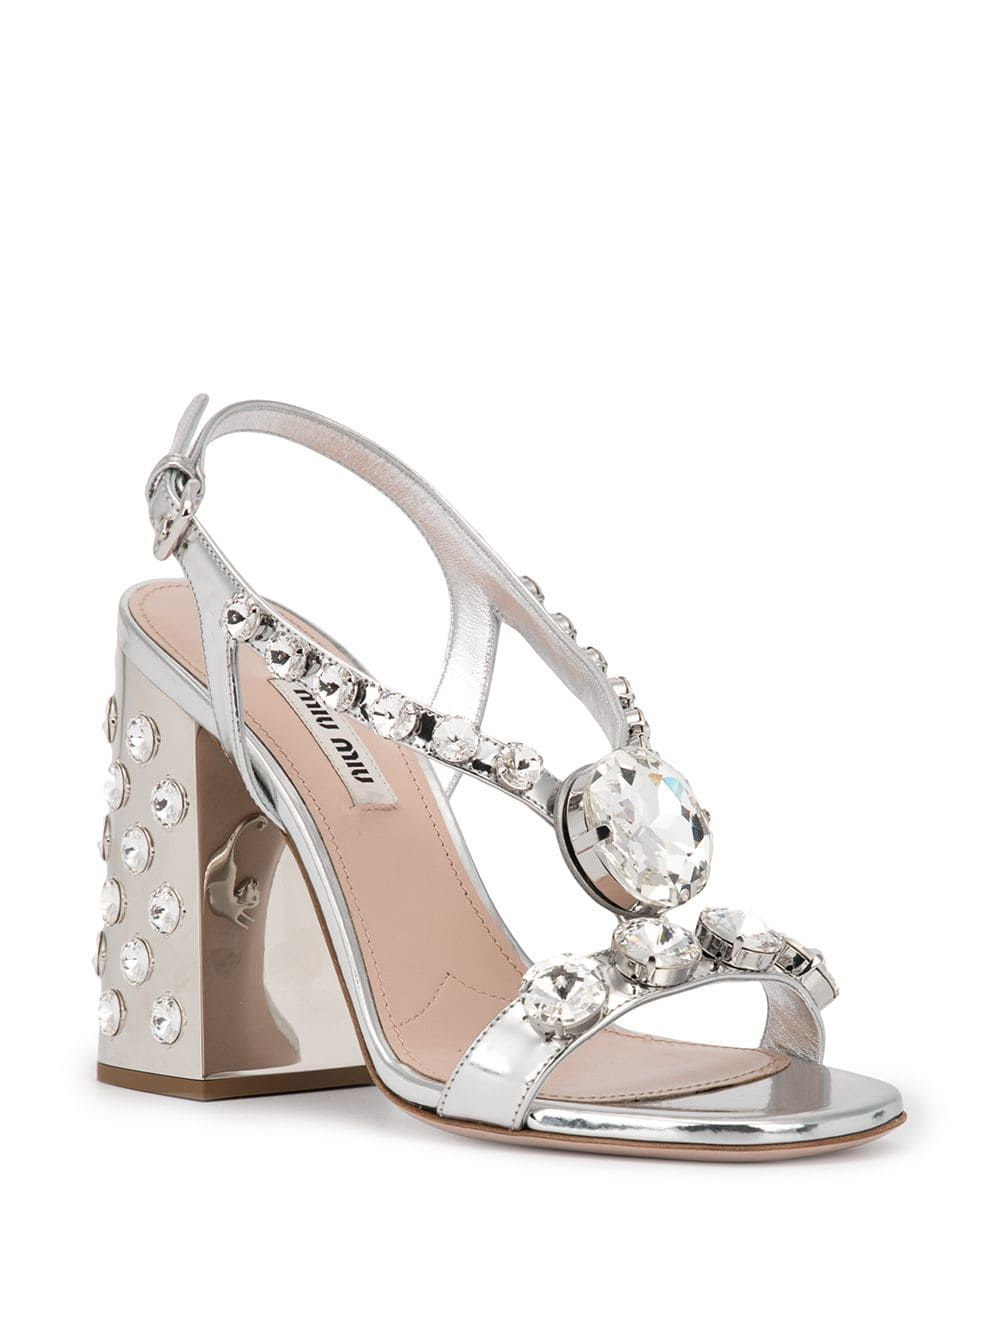 e713d7a5d3a Miu Miu Embellished Leather Sandals in 2019 | Hello Lover | Sandals ...